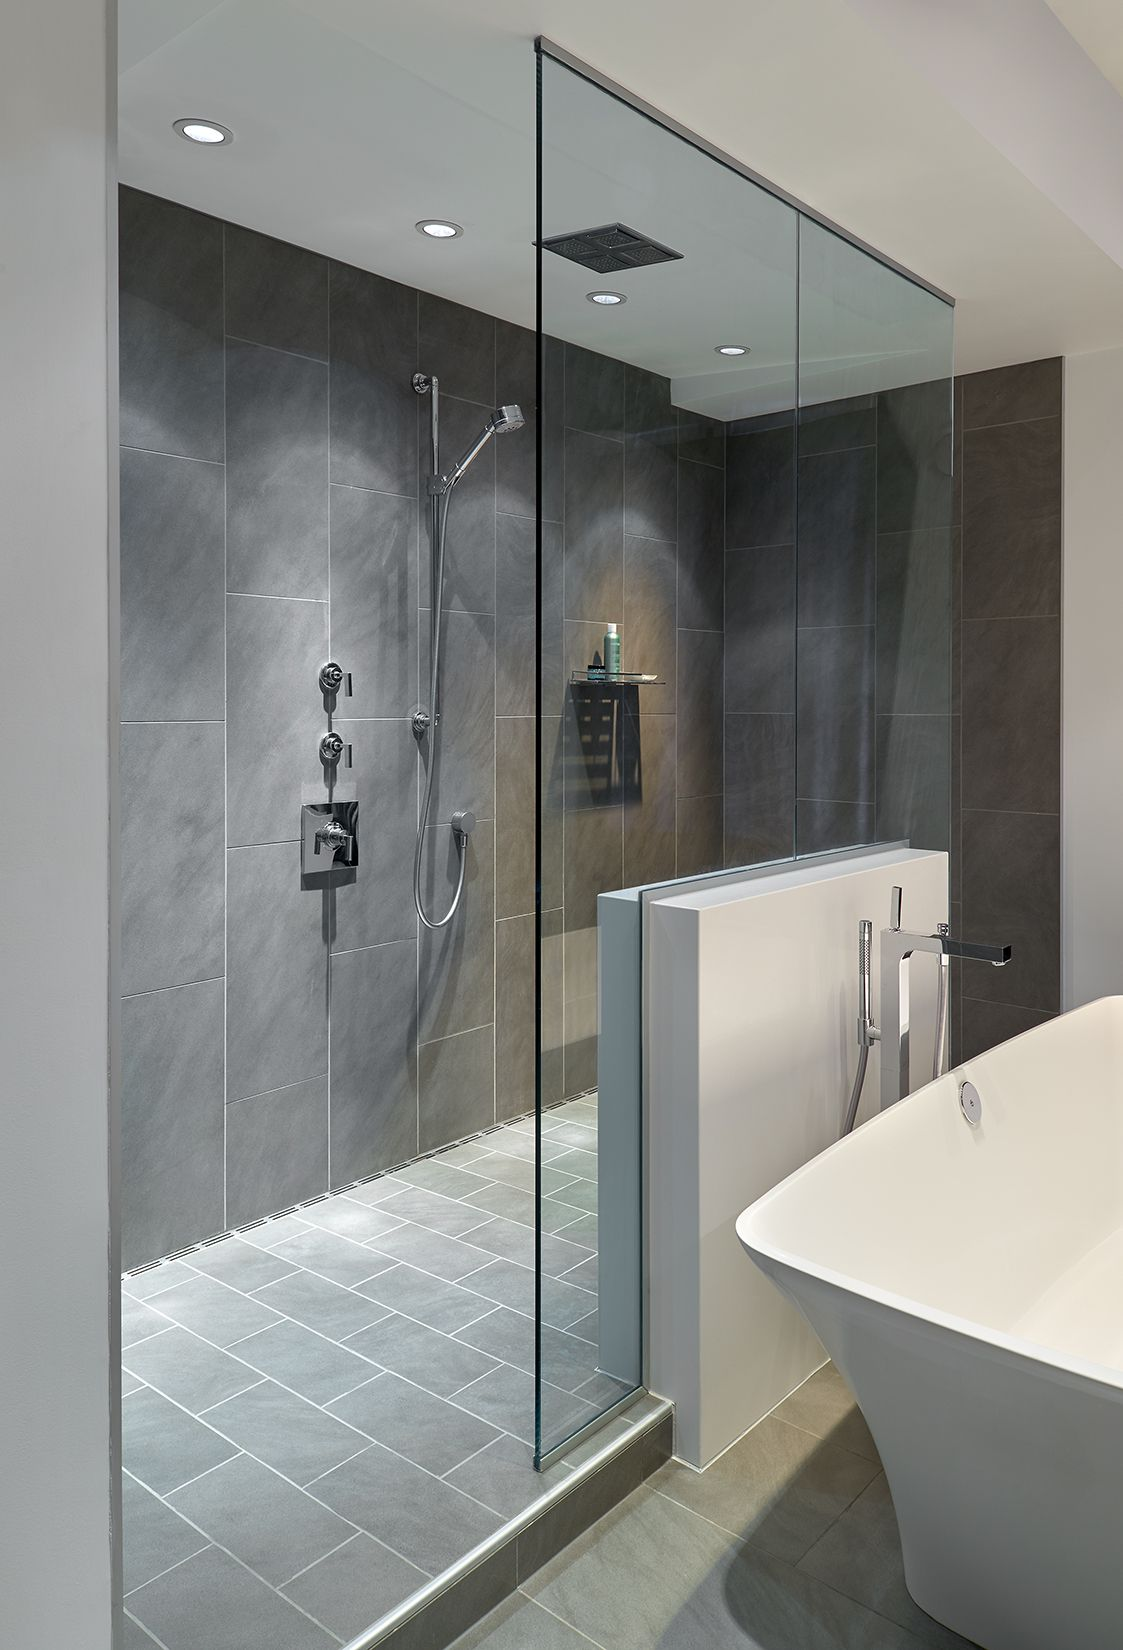 Large Walk In Doorless Shower With Gray Slate Tiles And A Floating Glass Wall Creates A Gorgeous Modern Look Bathroom Remodel Shower Shower Remodel Shower Tile